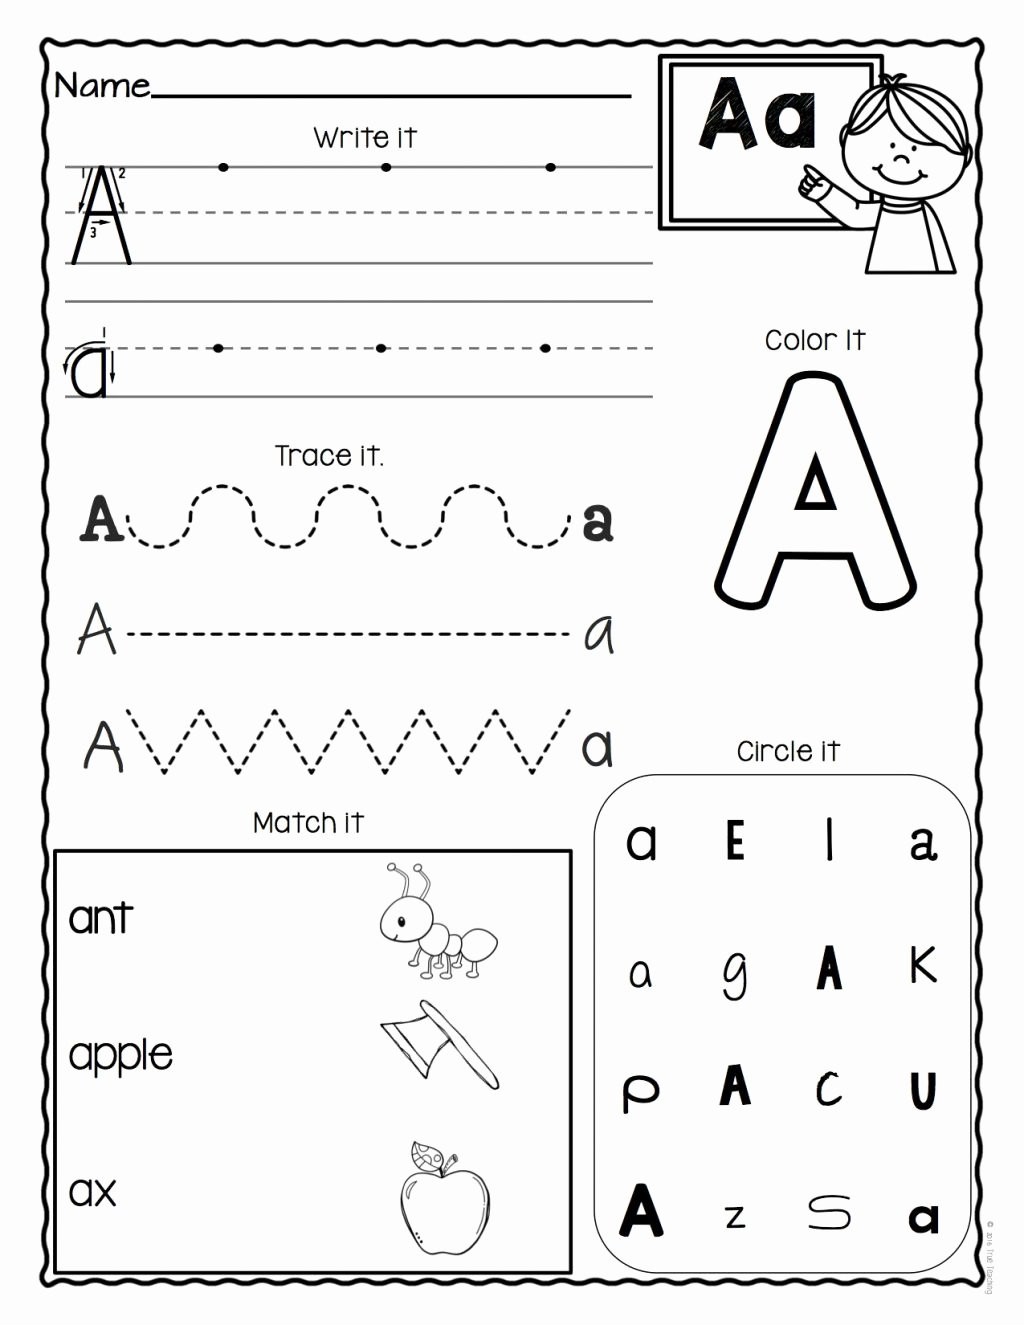 Free Letters Worksheets for Preschoolers Ideas Worksheet Alphabet Worksheets for Kindergarten